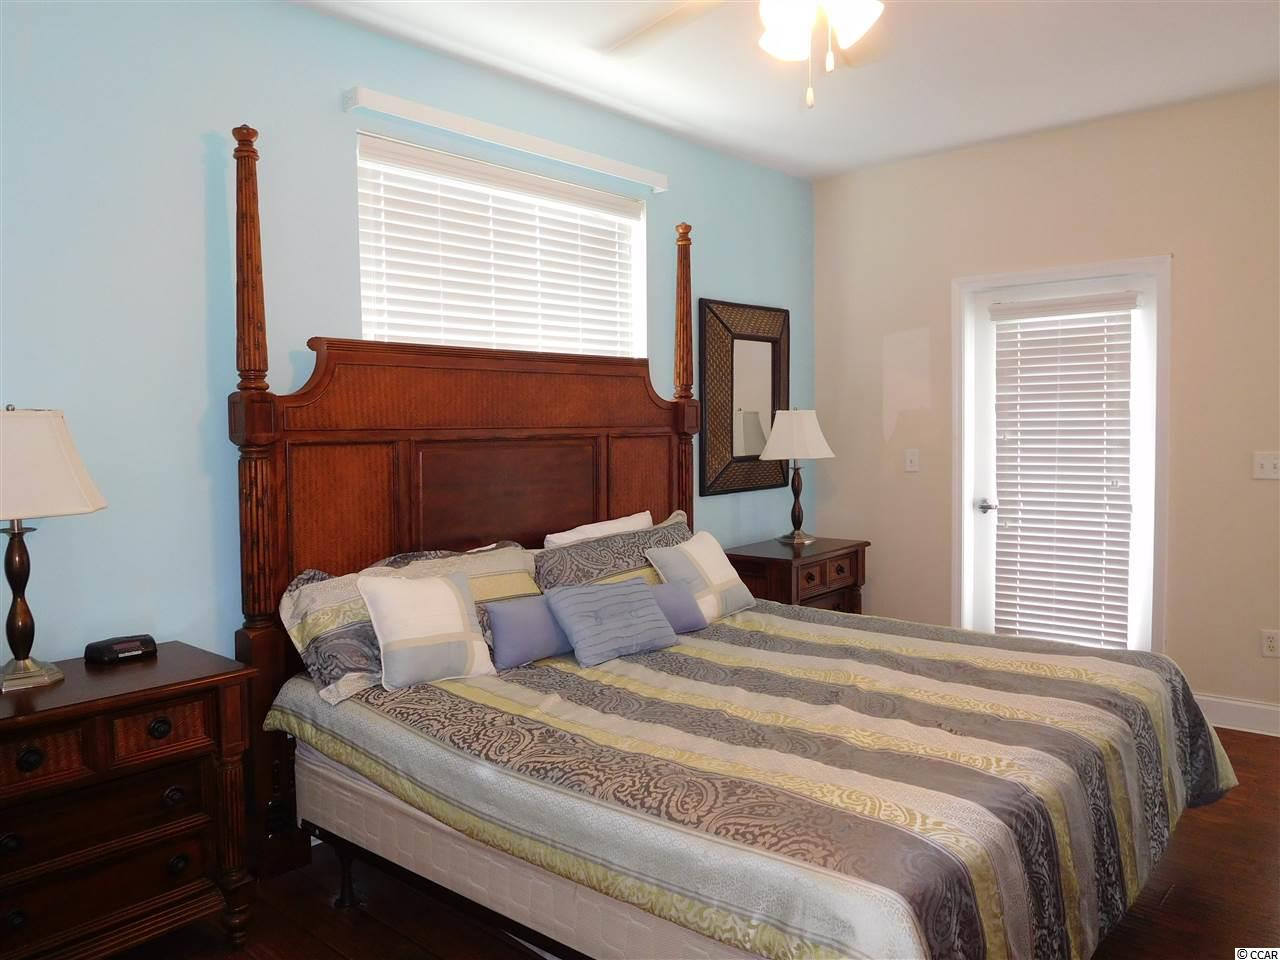 This property available at the  Ocean Breeze Luxury Villas in North Myrtle Beach – Real Estate